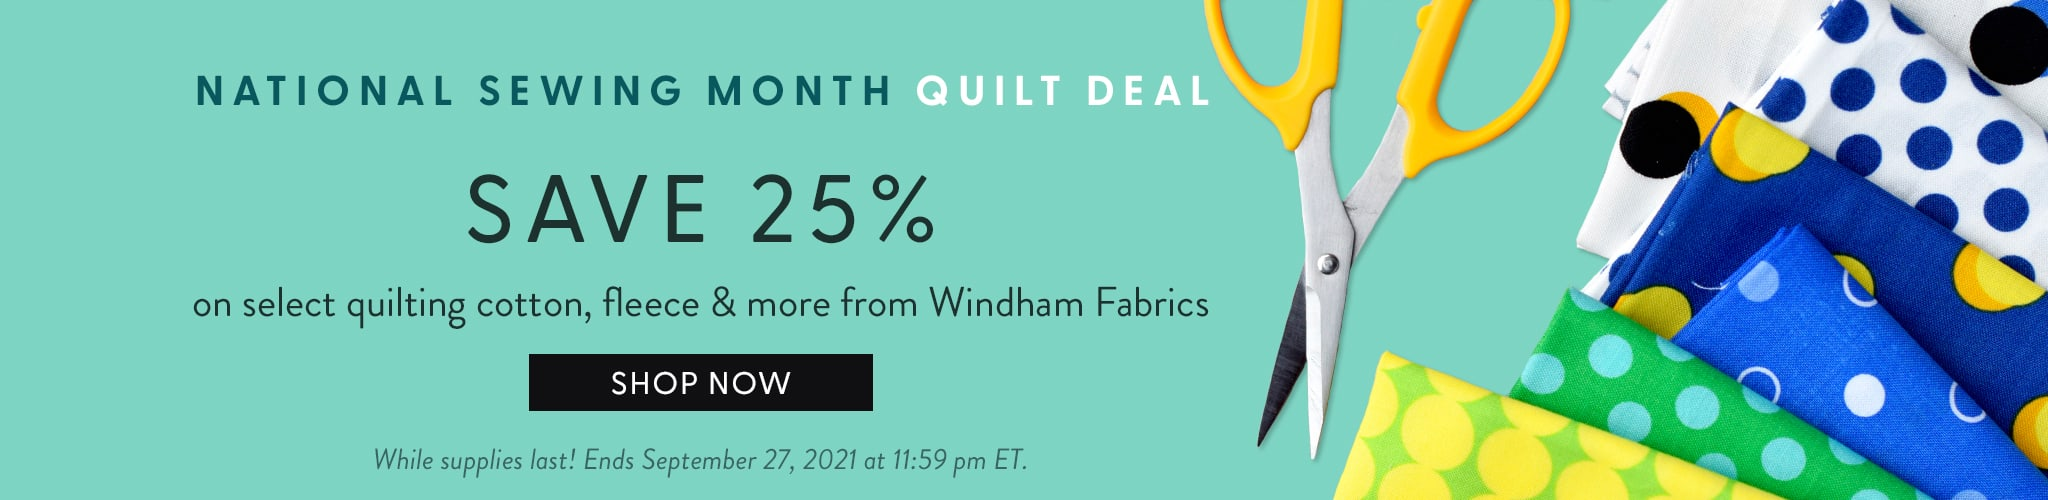 National Sewing Month Quilt Deal. Save 25 percent on select quilting cotton, fleece, and more from Windham Fabrics. Shop now. While Supplies Last! Ends September 27, 2021 at 11:59 pm ET.